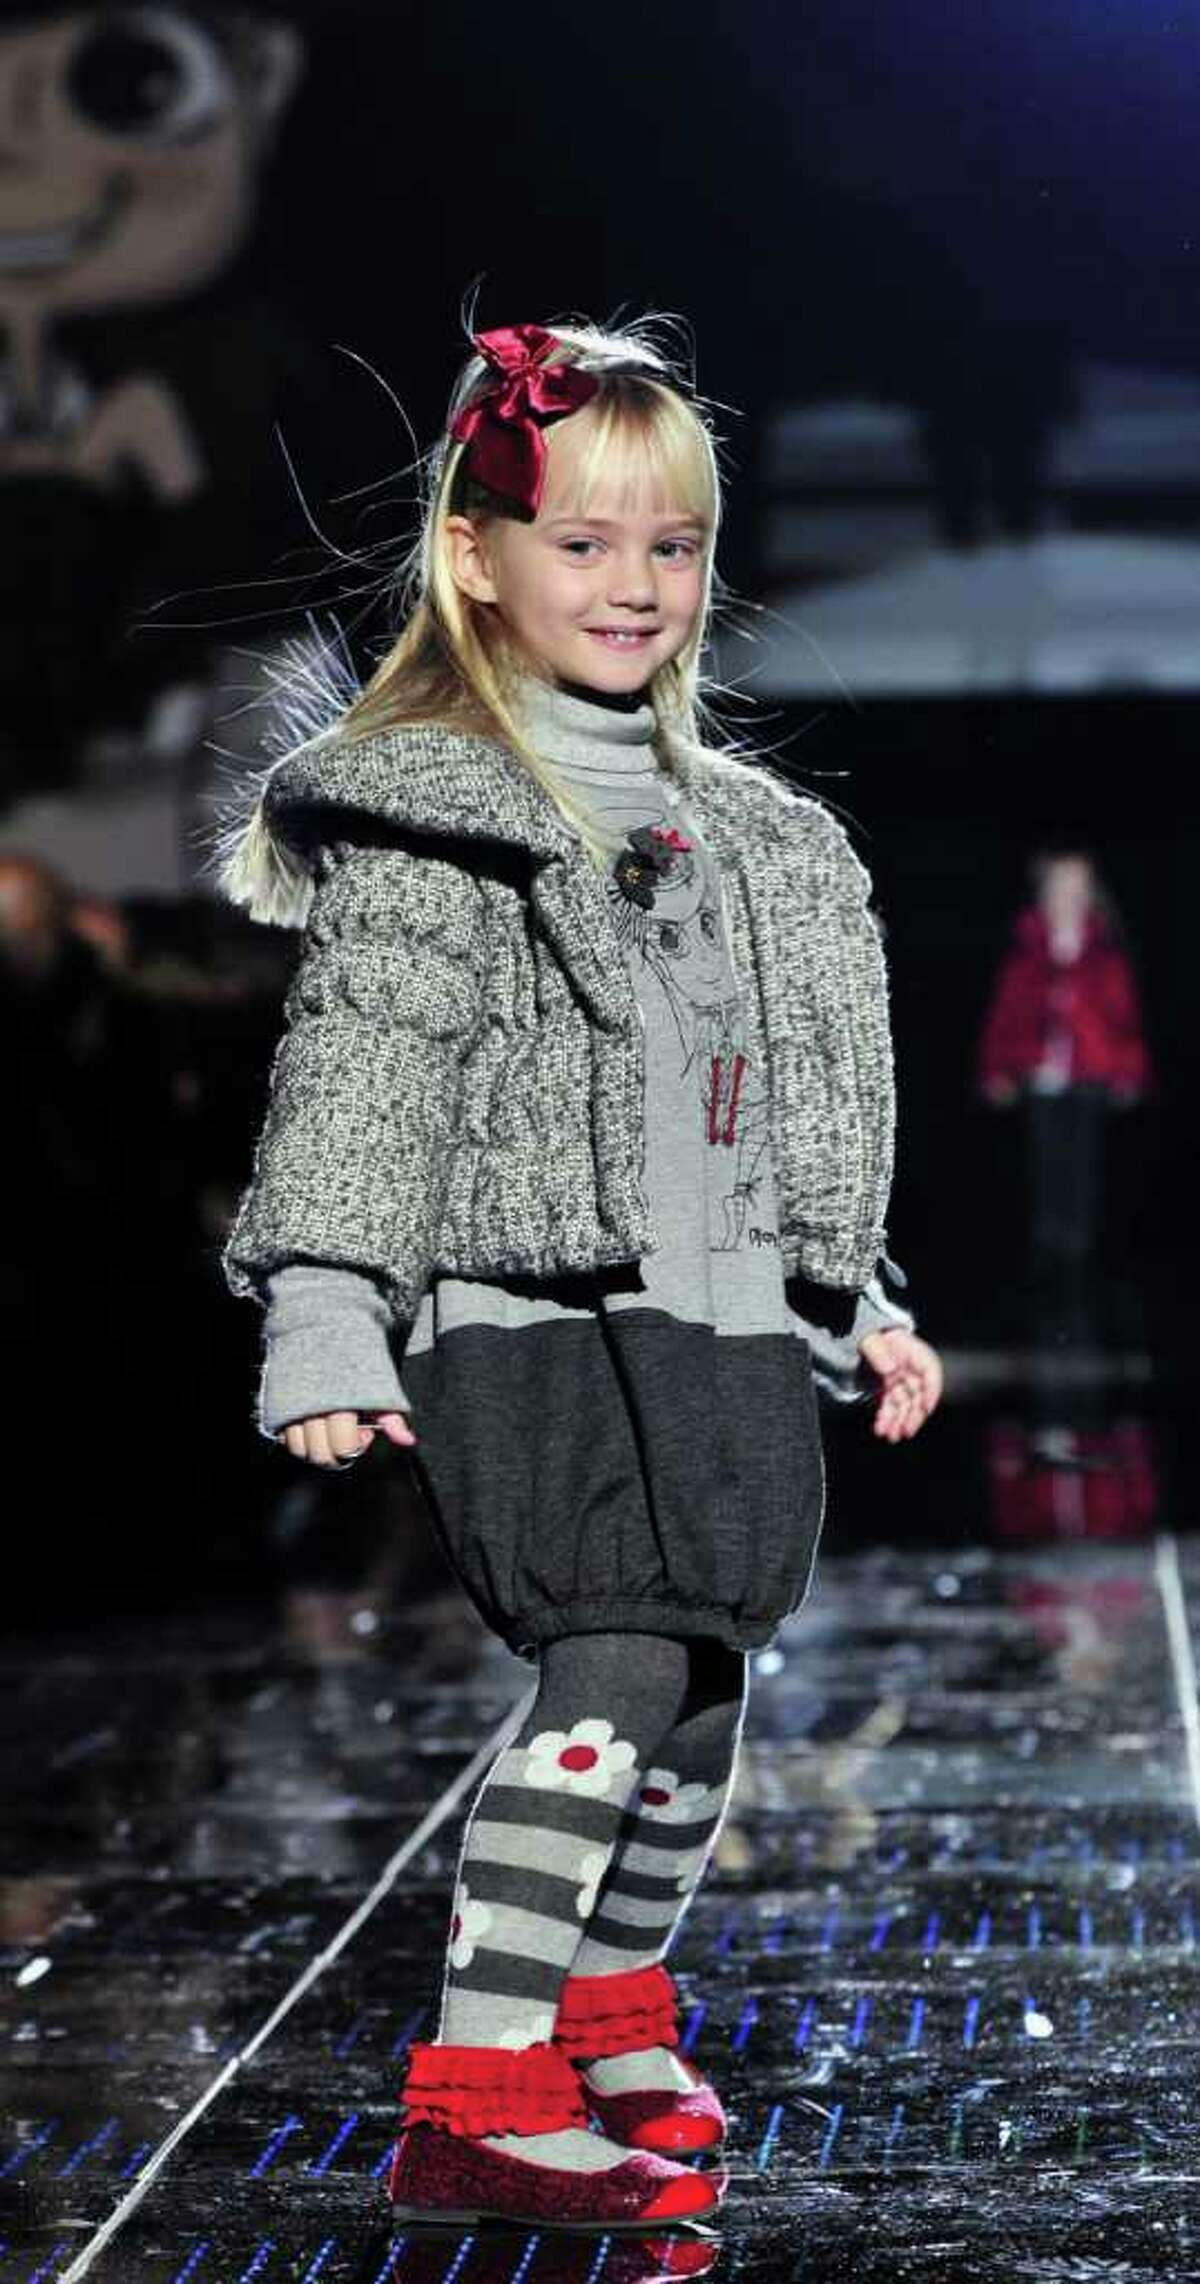 In this photo made available on Friday, Jan. 21, 2011, a model presents a creation of the collection of Italian design label Monalisa at the annual 'Pitti Bimbo' fashion show for children, in Florence, Italy, Thursday, Jan. 20, 2011.